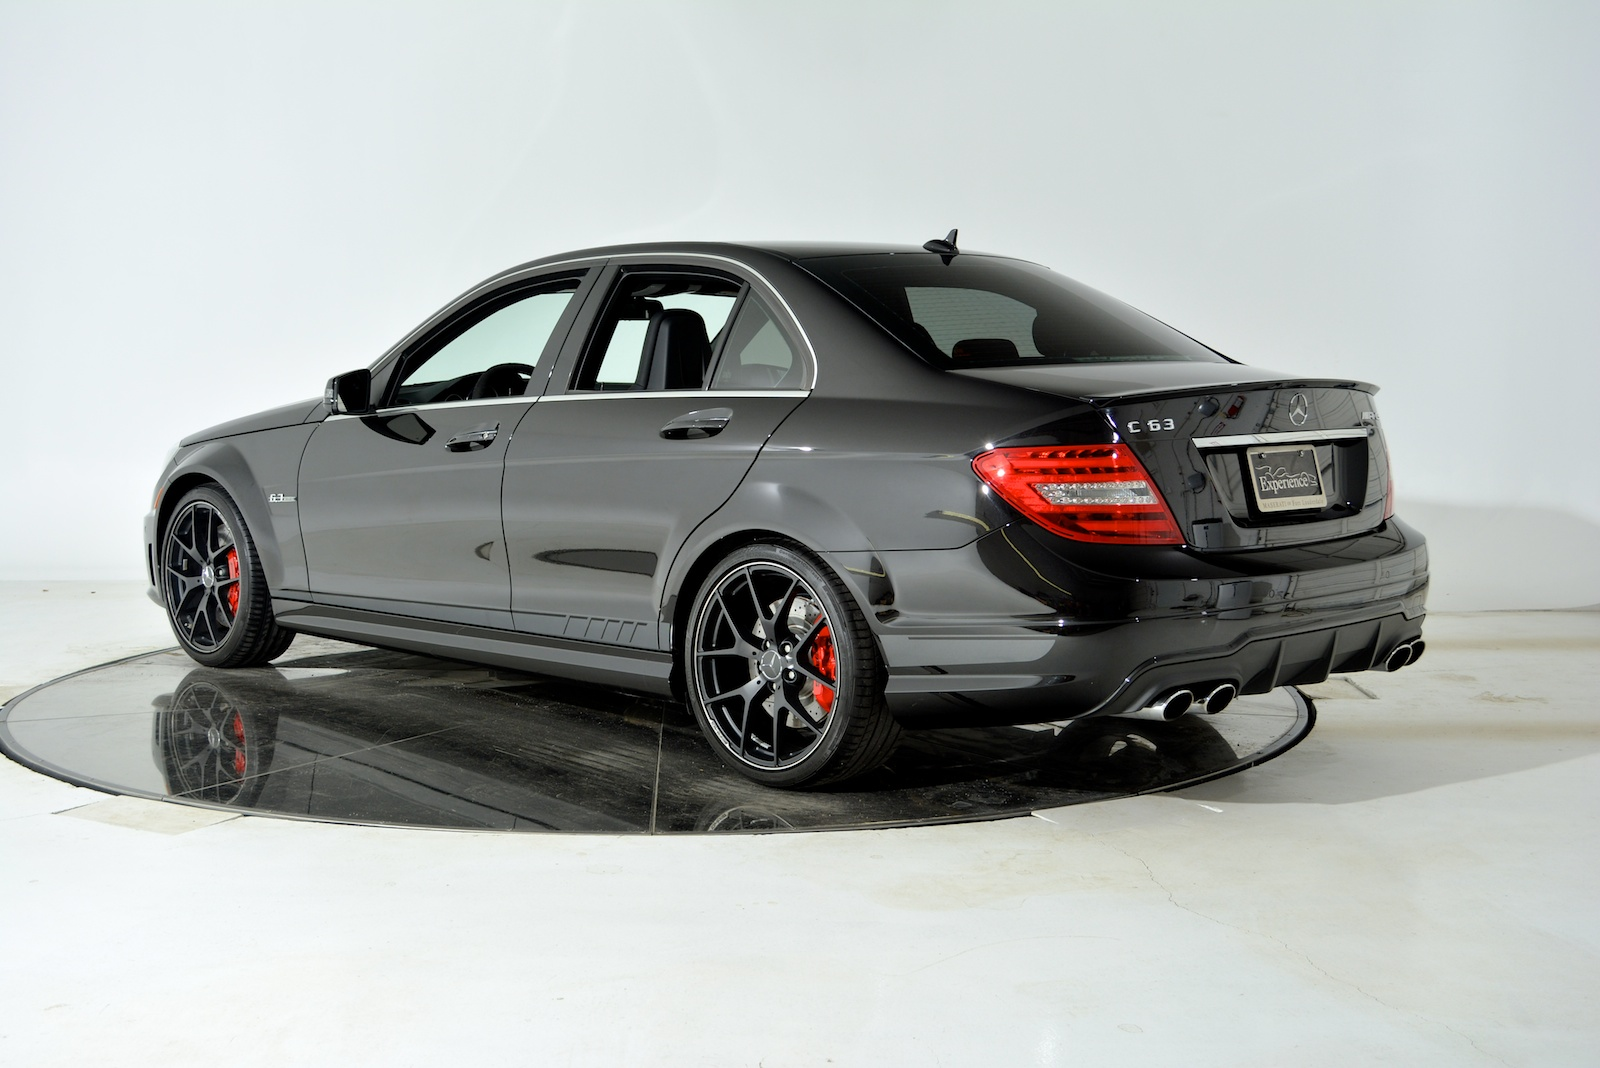 2014 Mercedes Benz C63 Amg Edition 507 Car Photos Catalog 2018